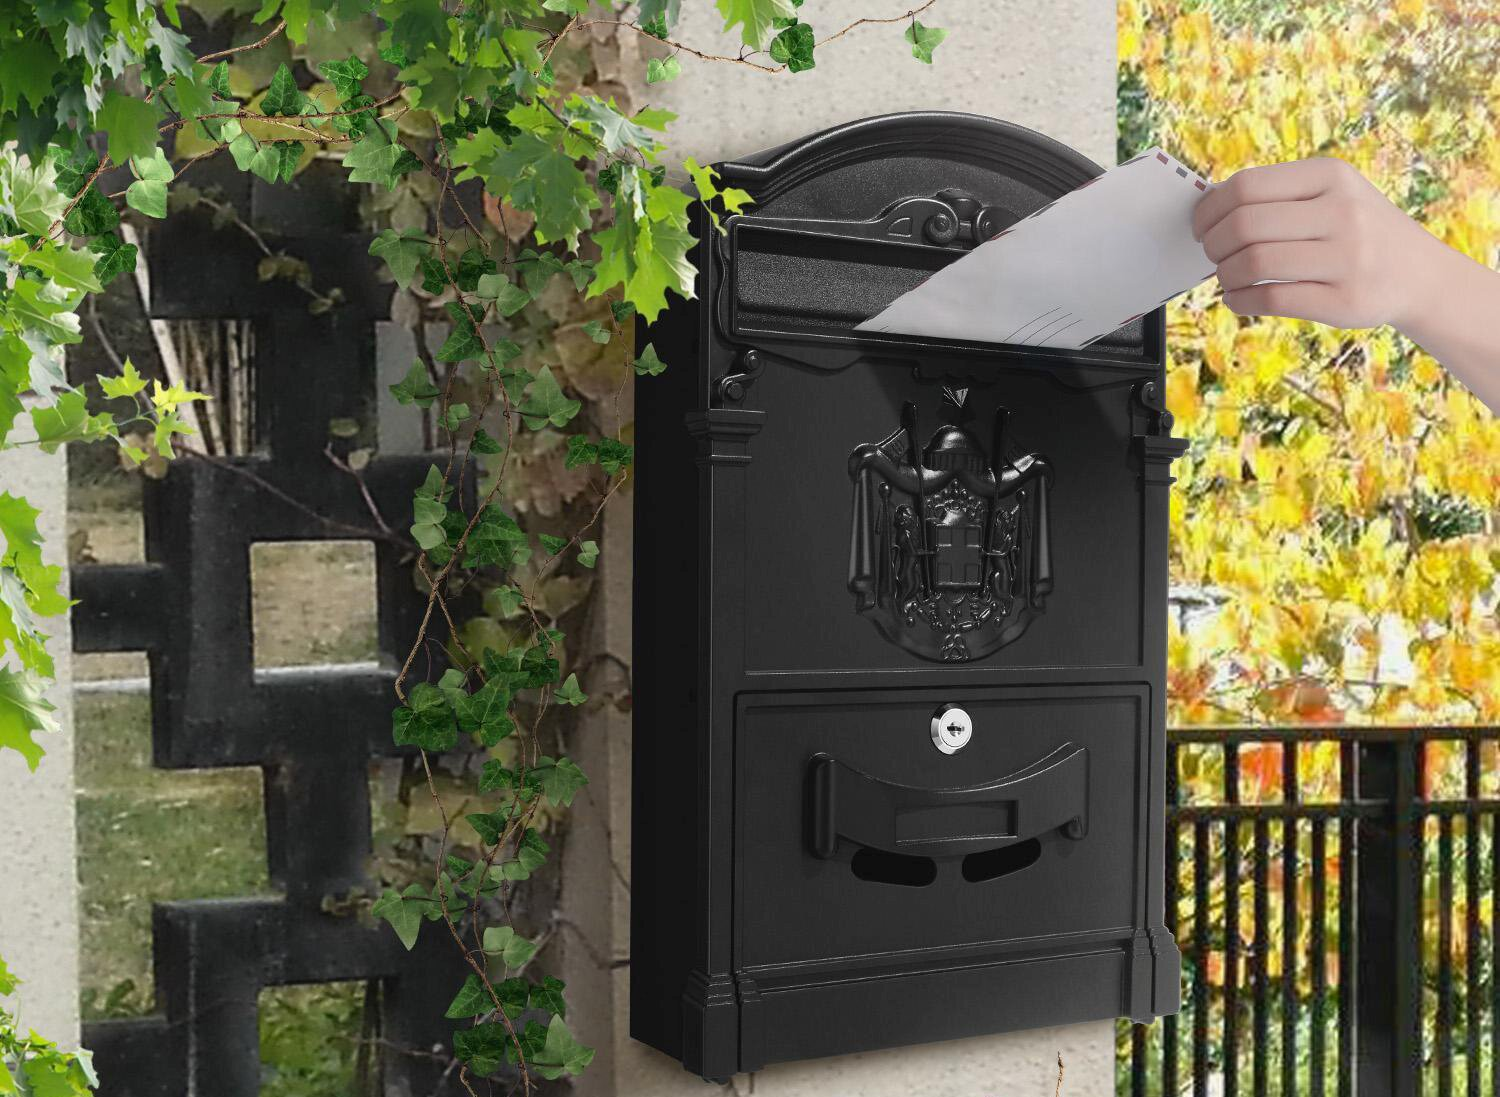 wall-mounted letterbox